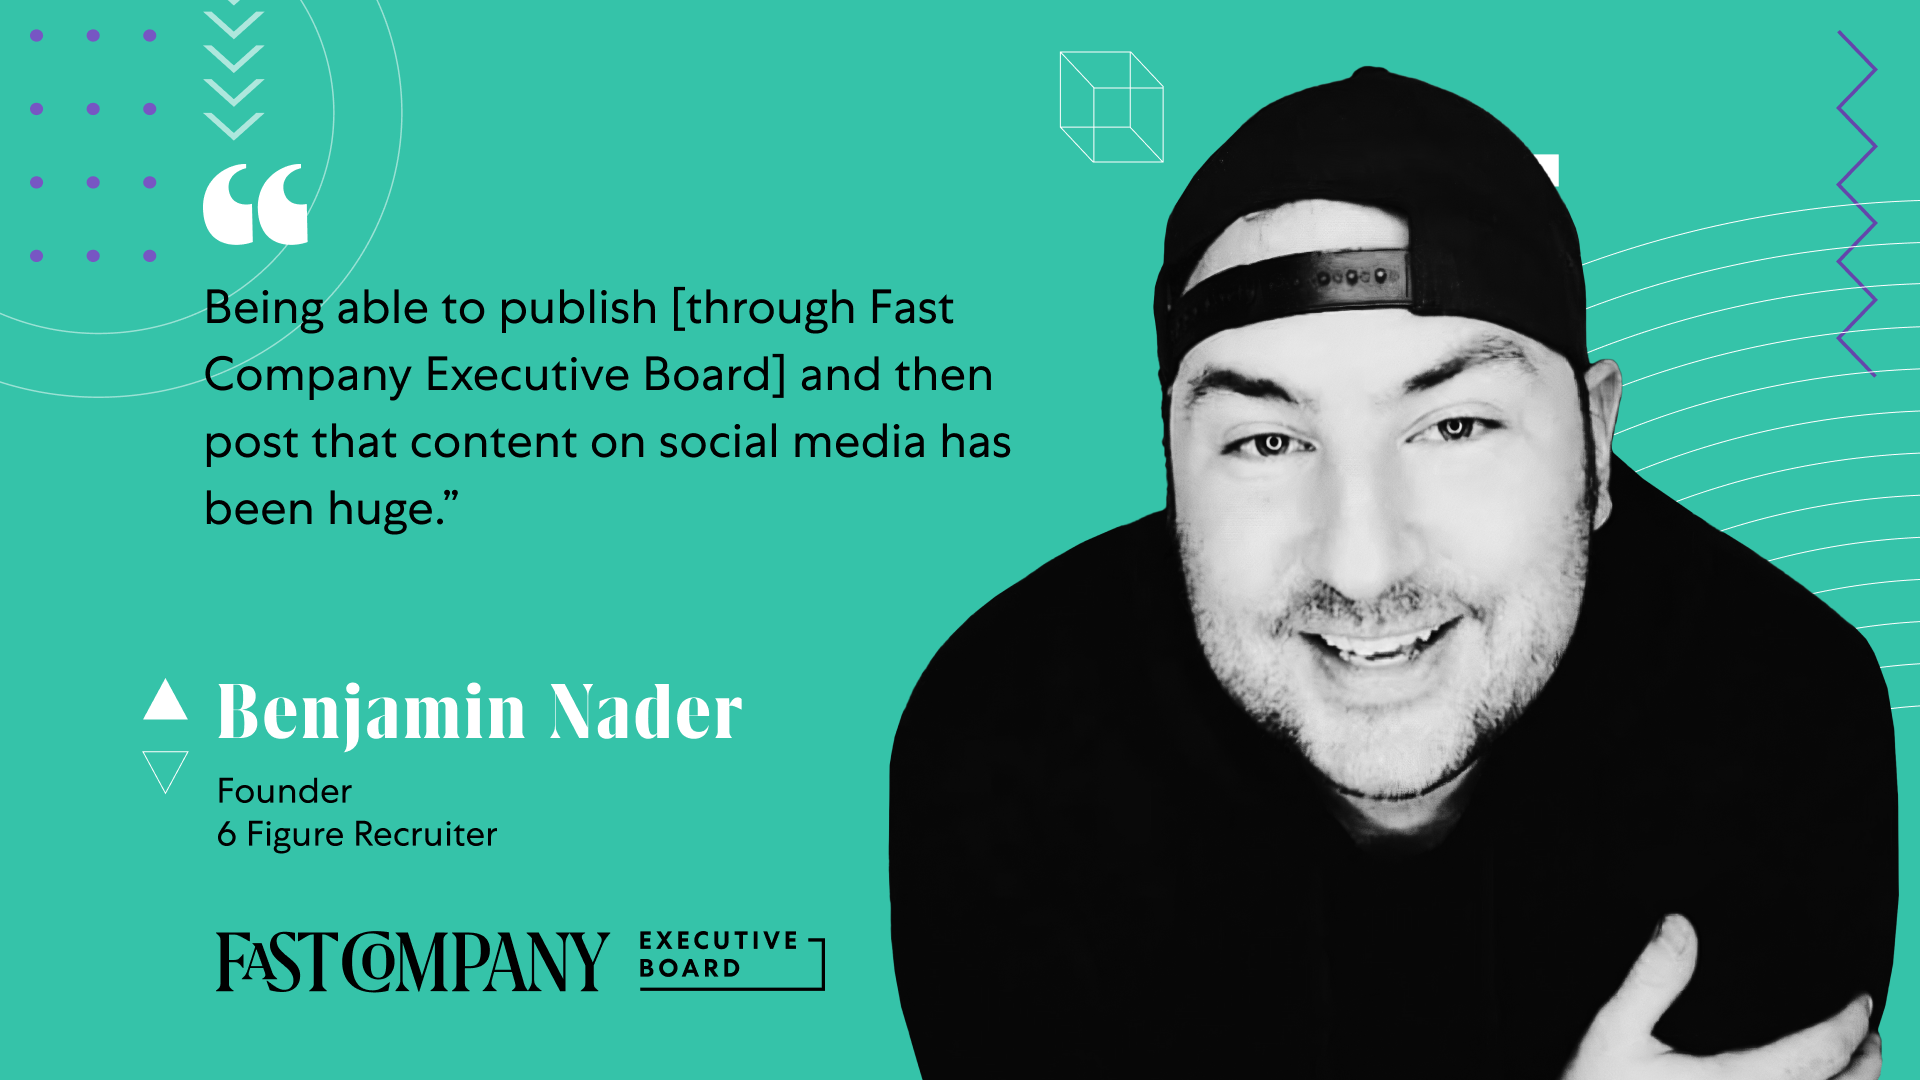 Fast Company Executive Board Provides Ben Nader With a Content Marketing Outlet